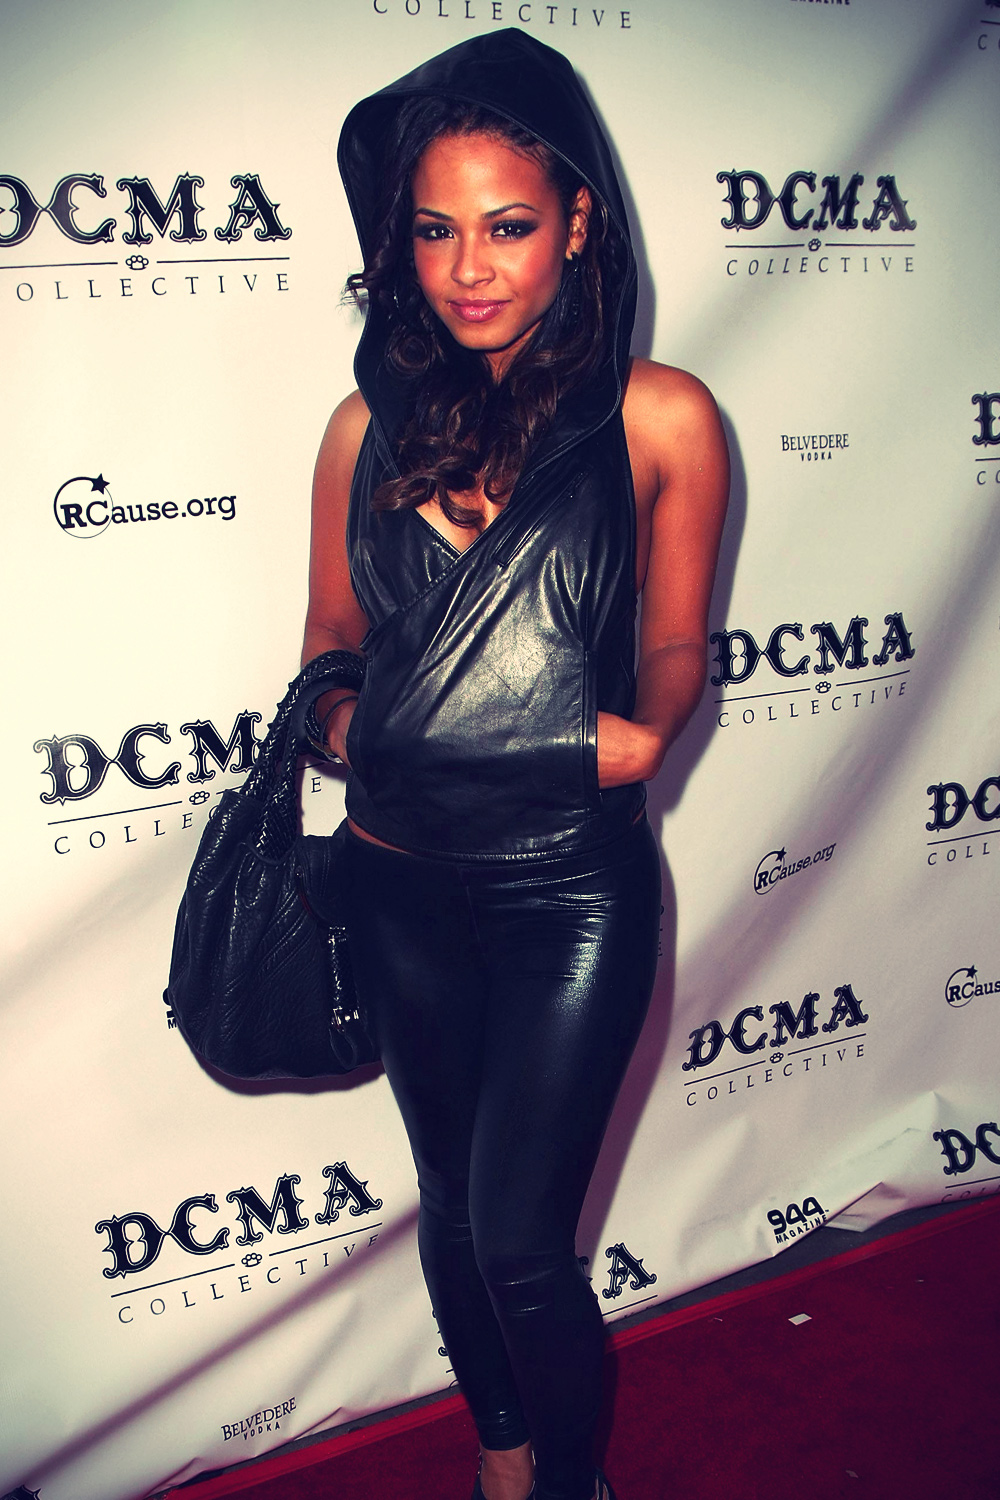 Christina Milian at opening of DCMA Collective's flagship store